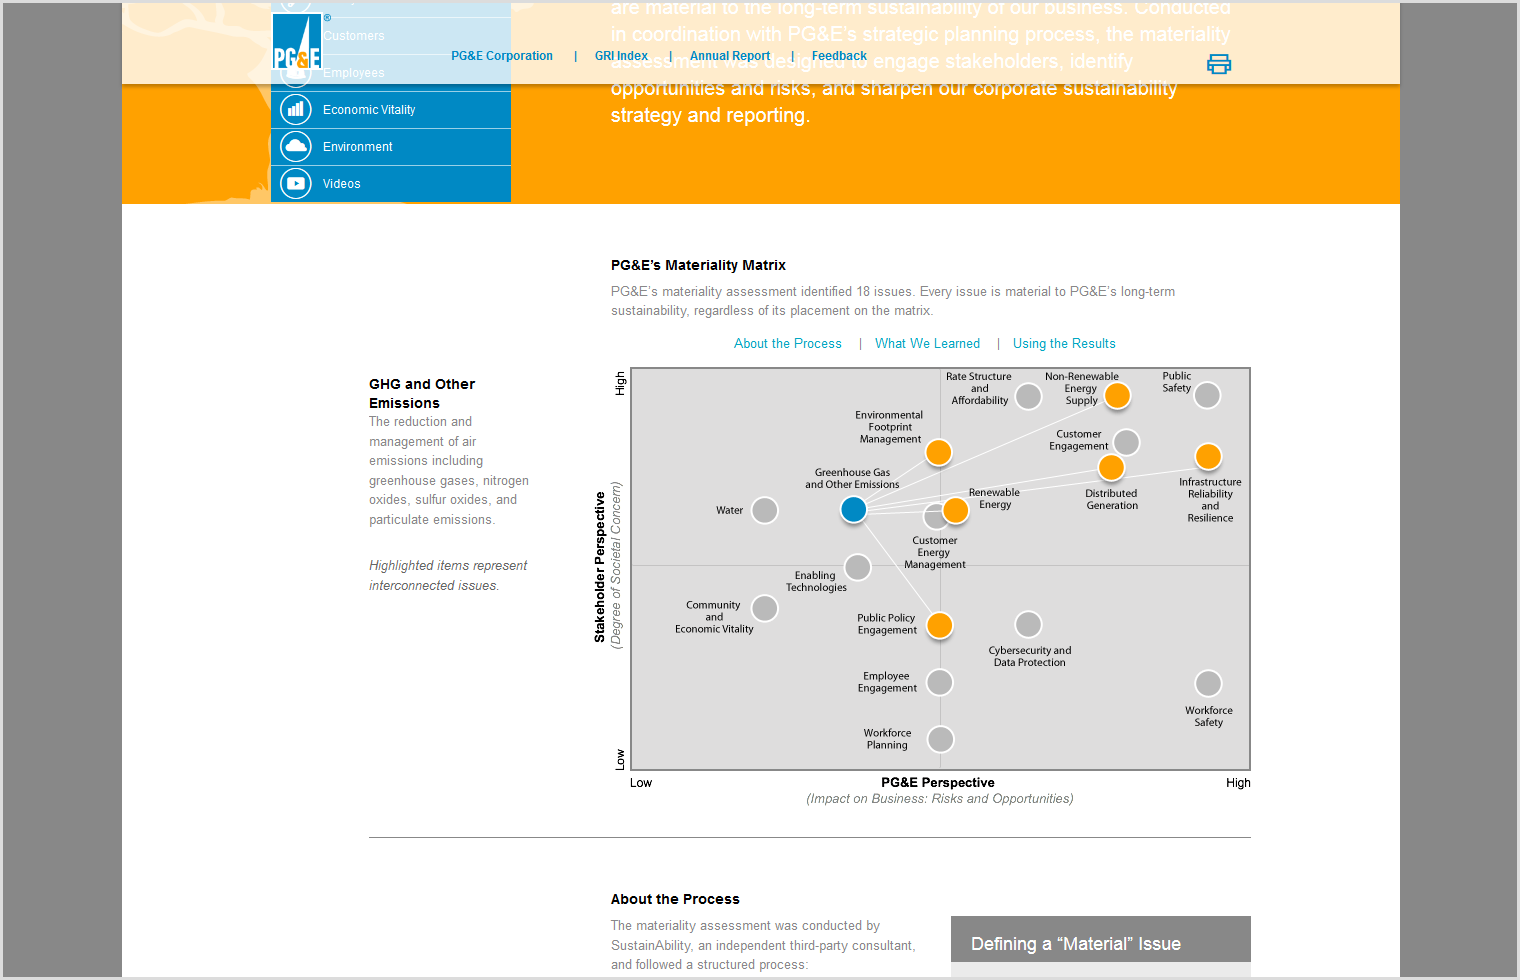 Interactive Materiality Matrix by PG&E